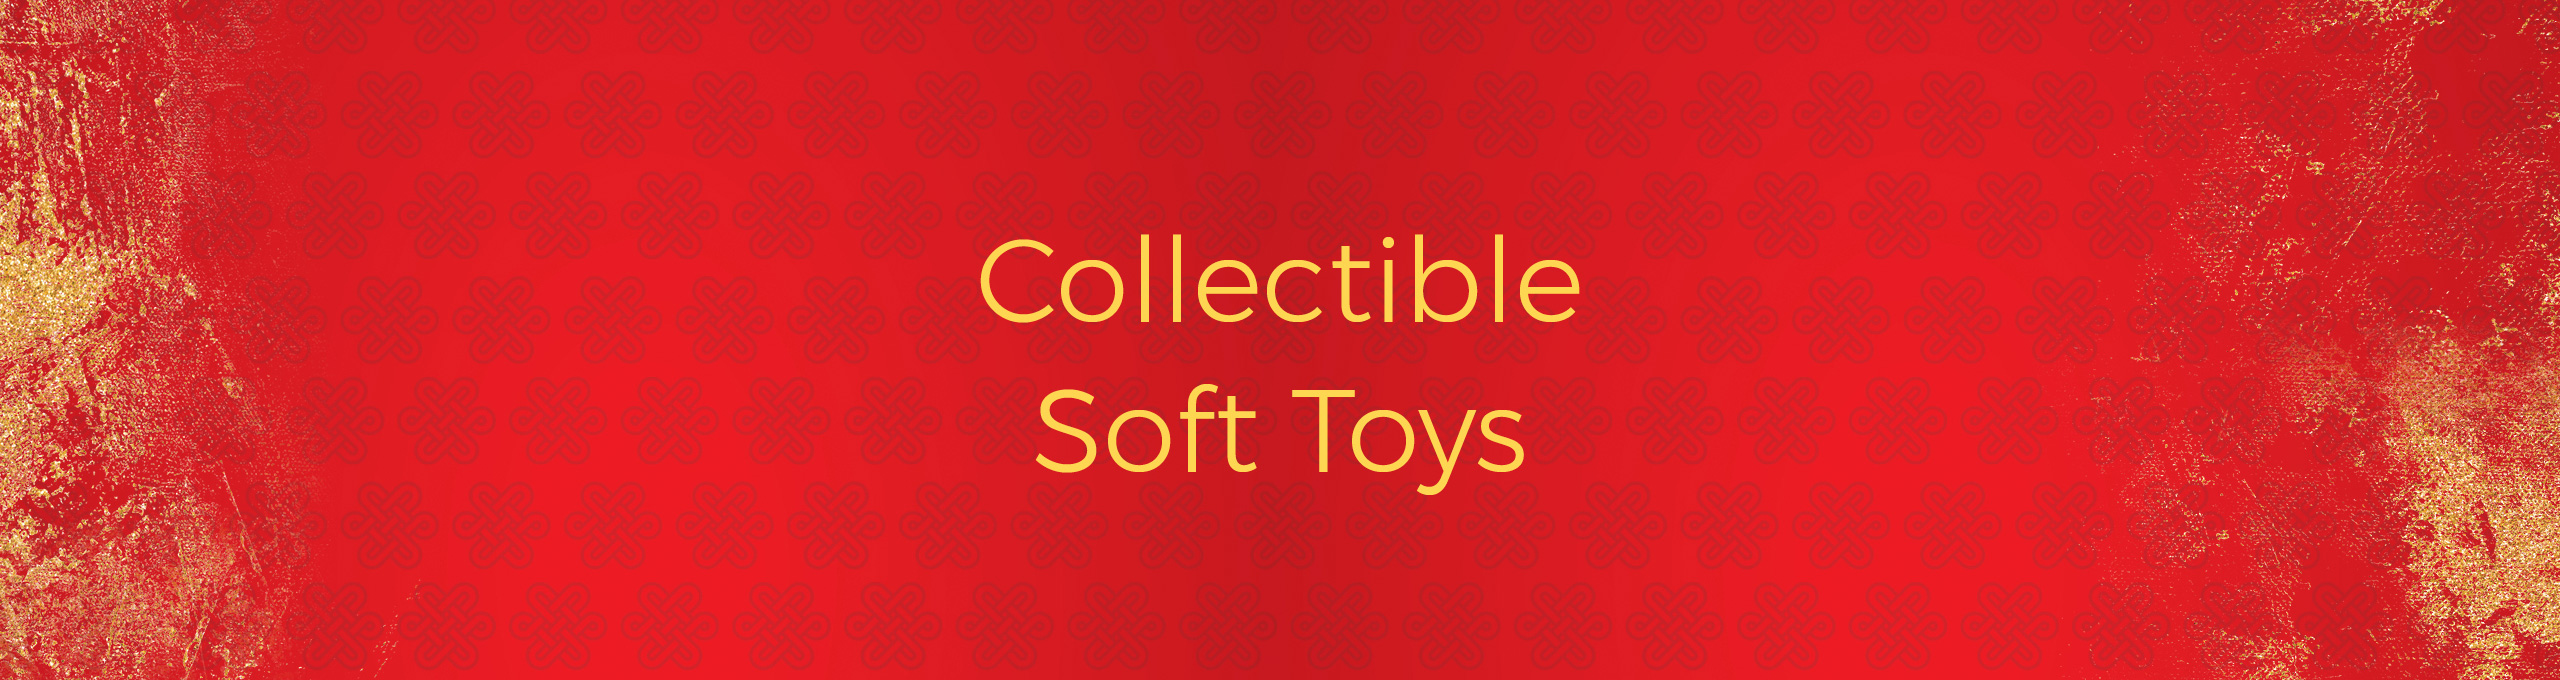 Collectible Soft Toys